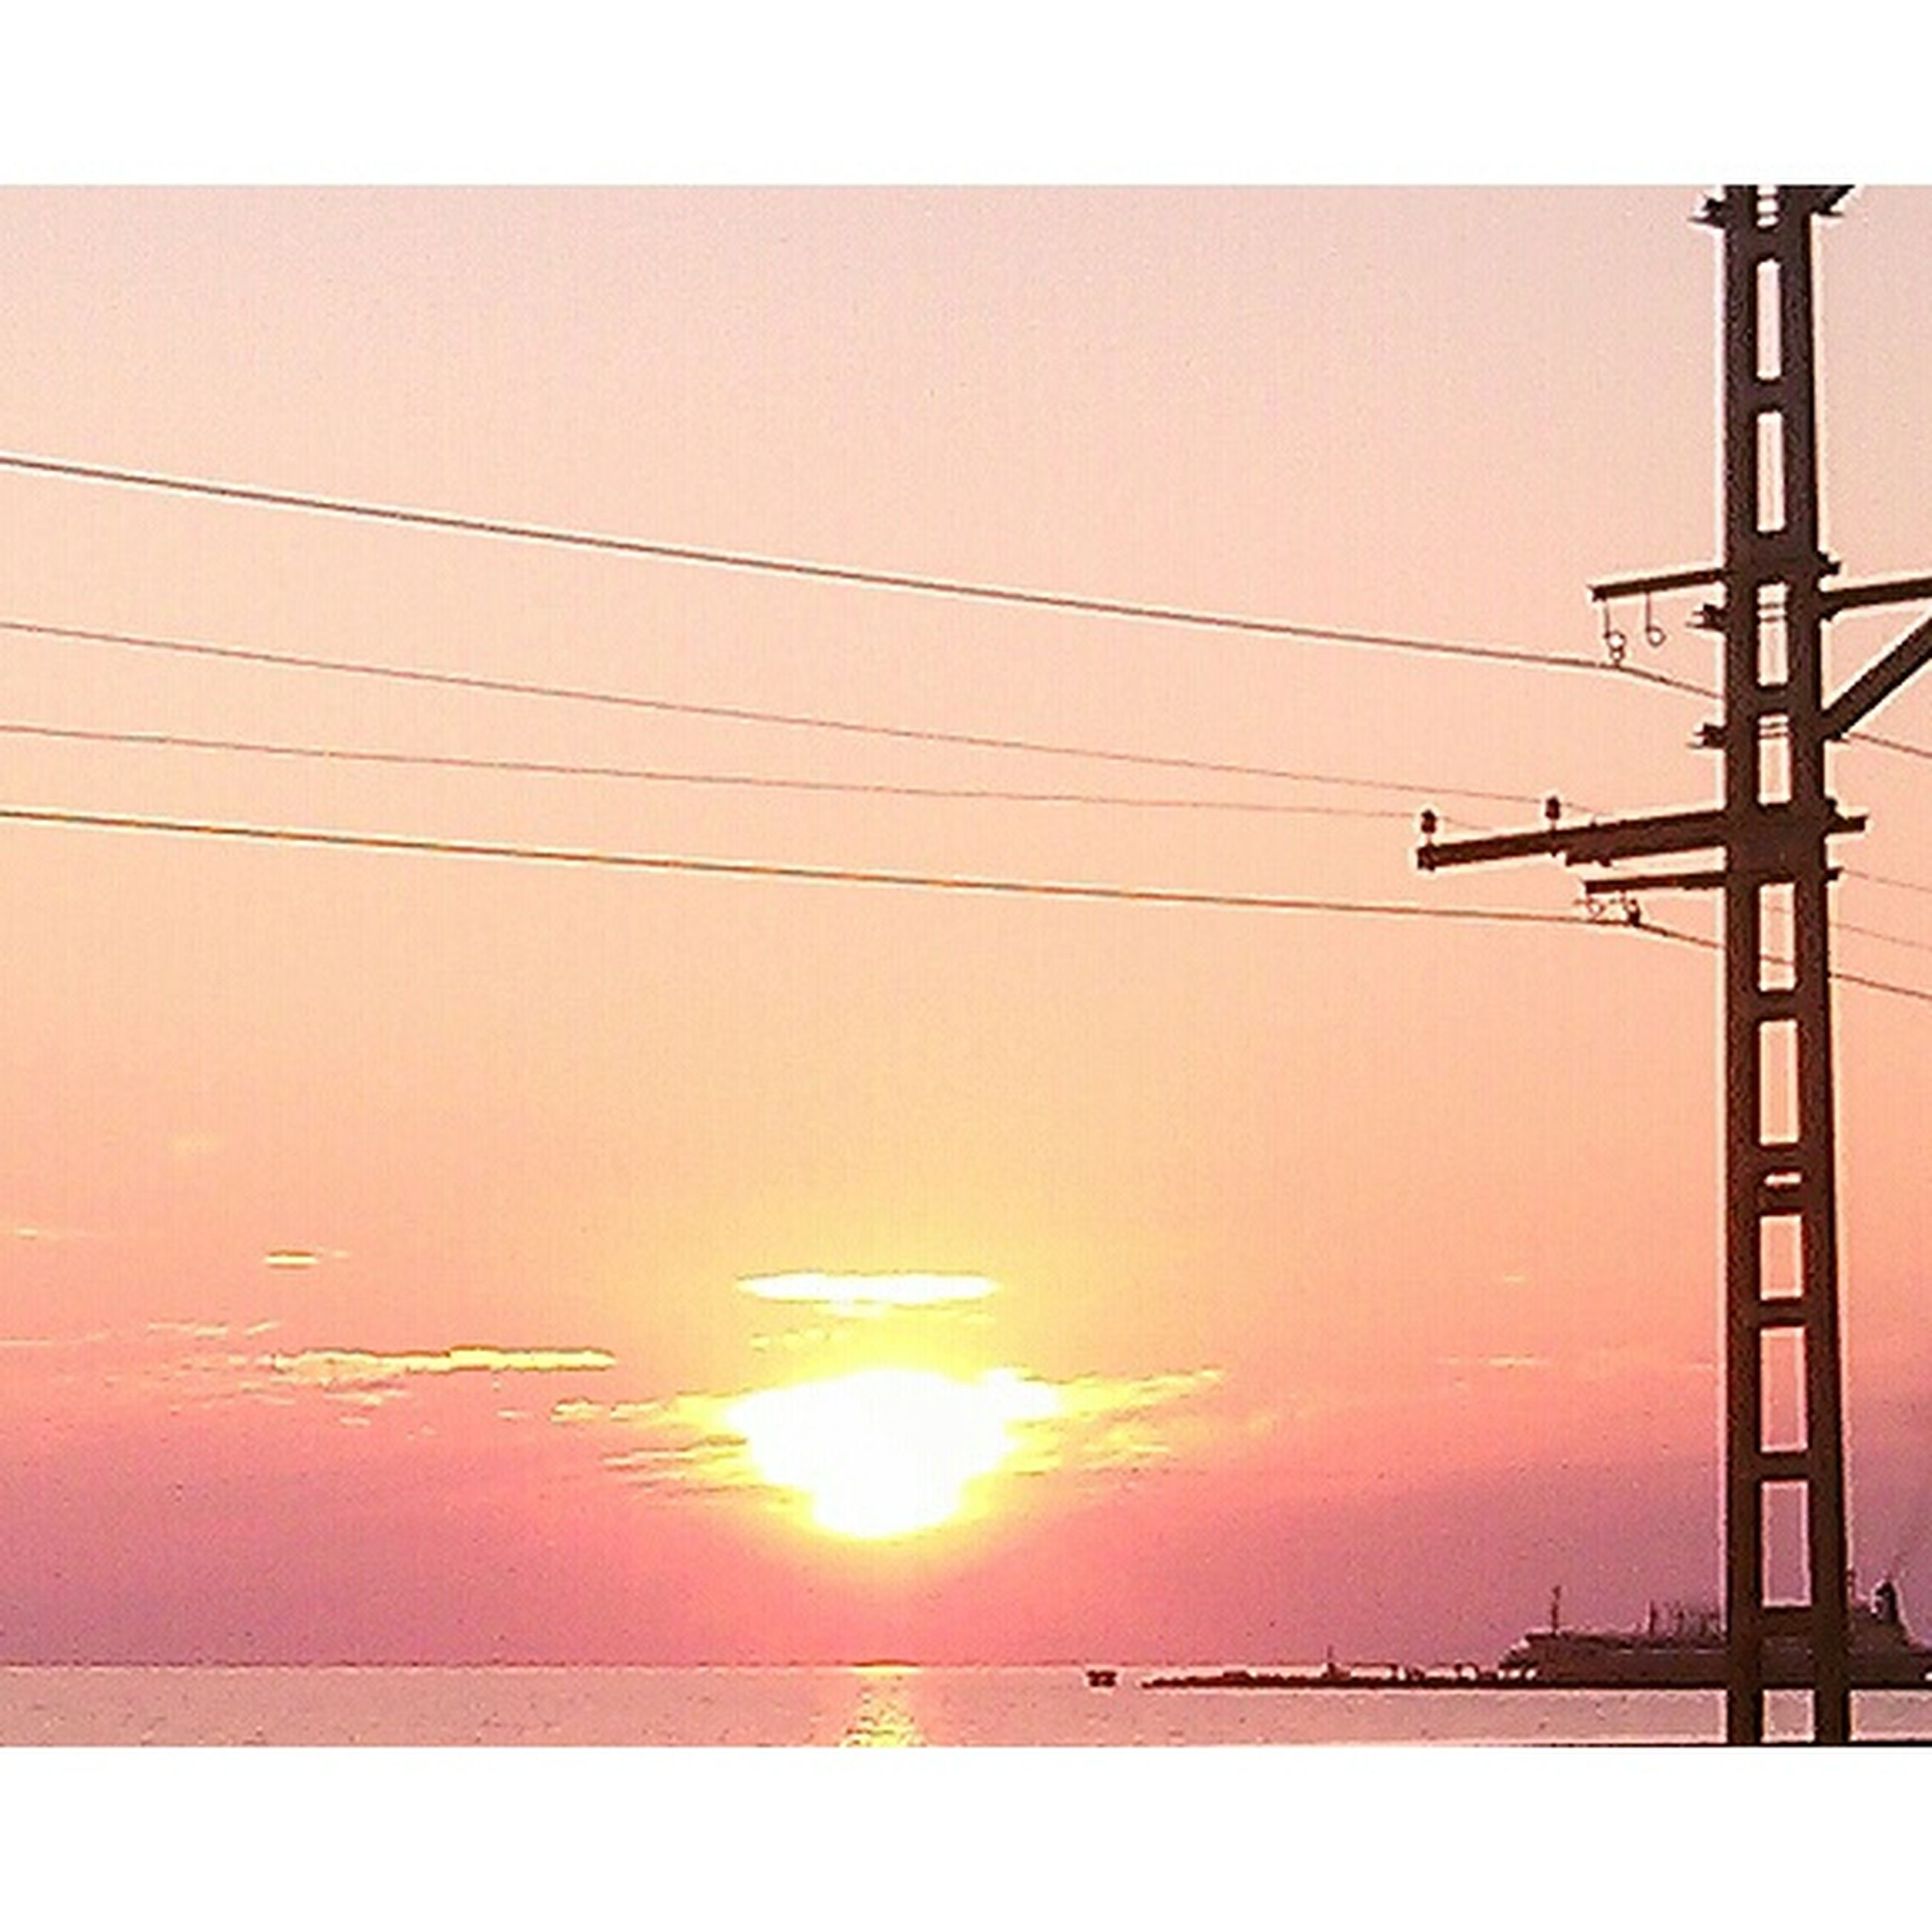 power line, power supply, electricity, electricity pylon, sunset, fuel and power generation, cable, connection, low angle view, sun, technology, transfer print, sky, clear sky, power cable, auto post production filter, sunlight, built structure, orange color, outdoors